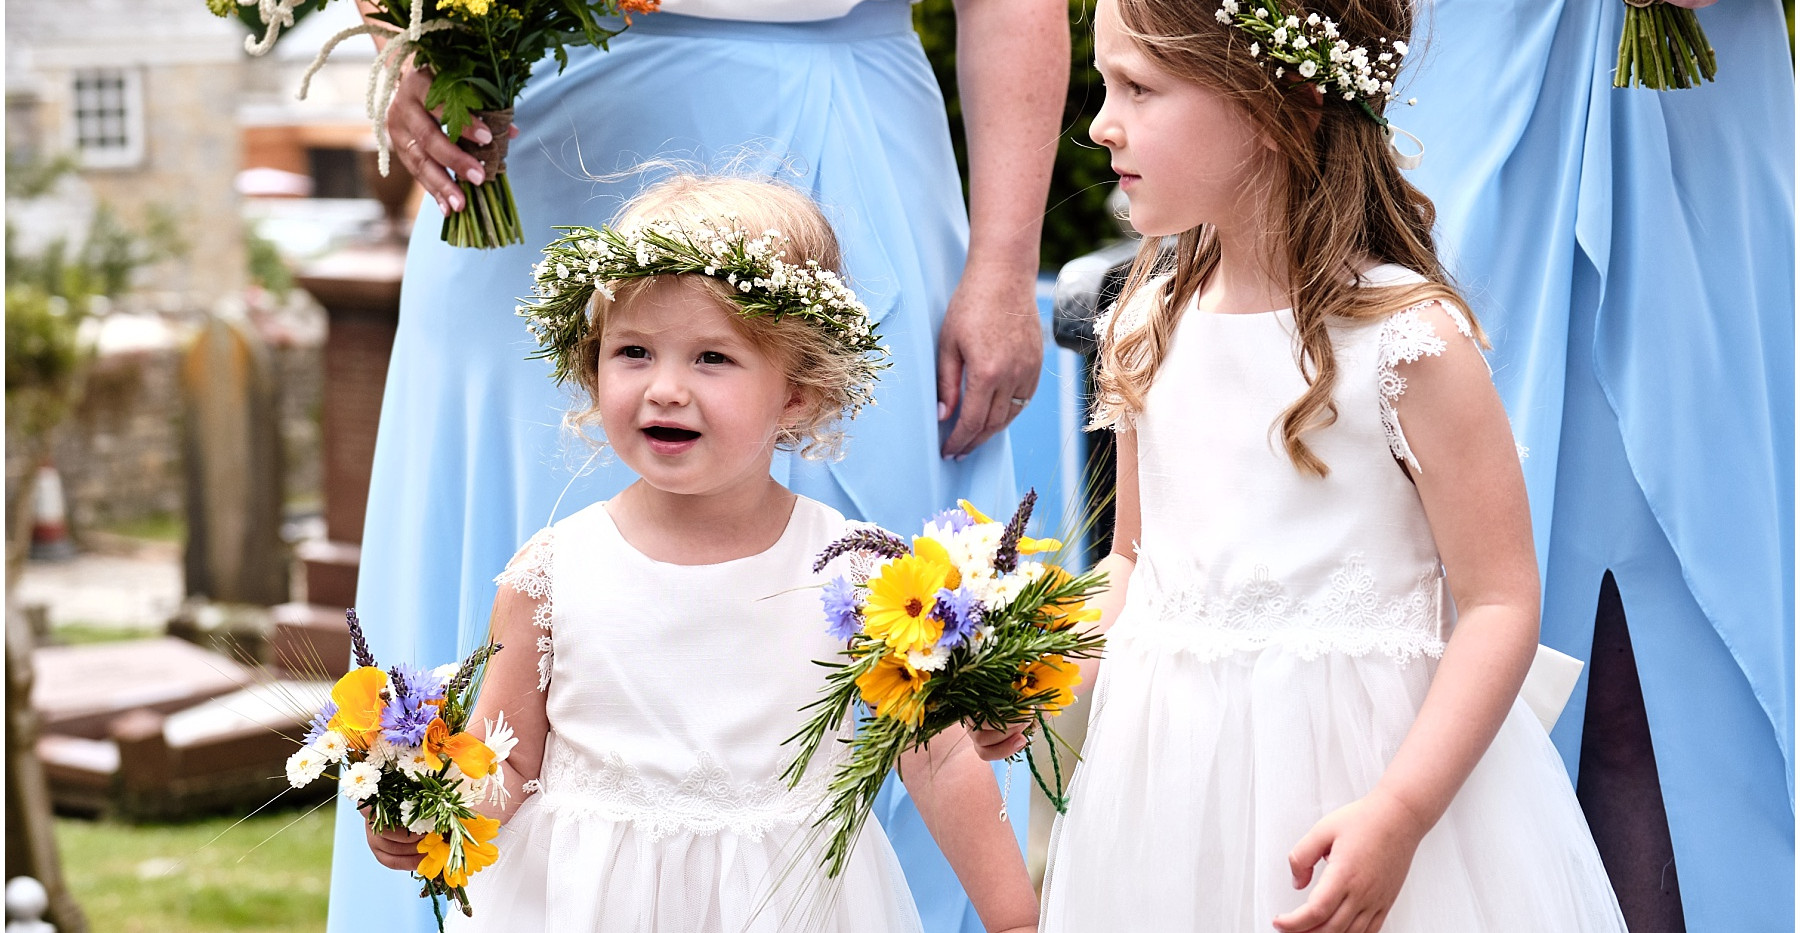 Gypsophila flower crowns